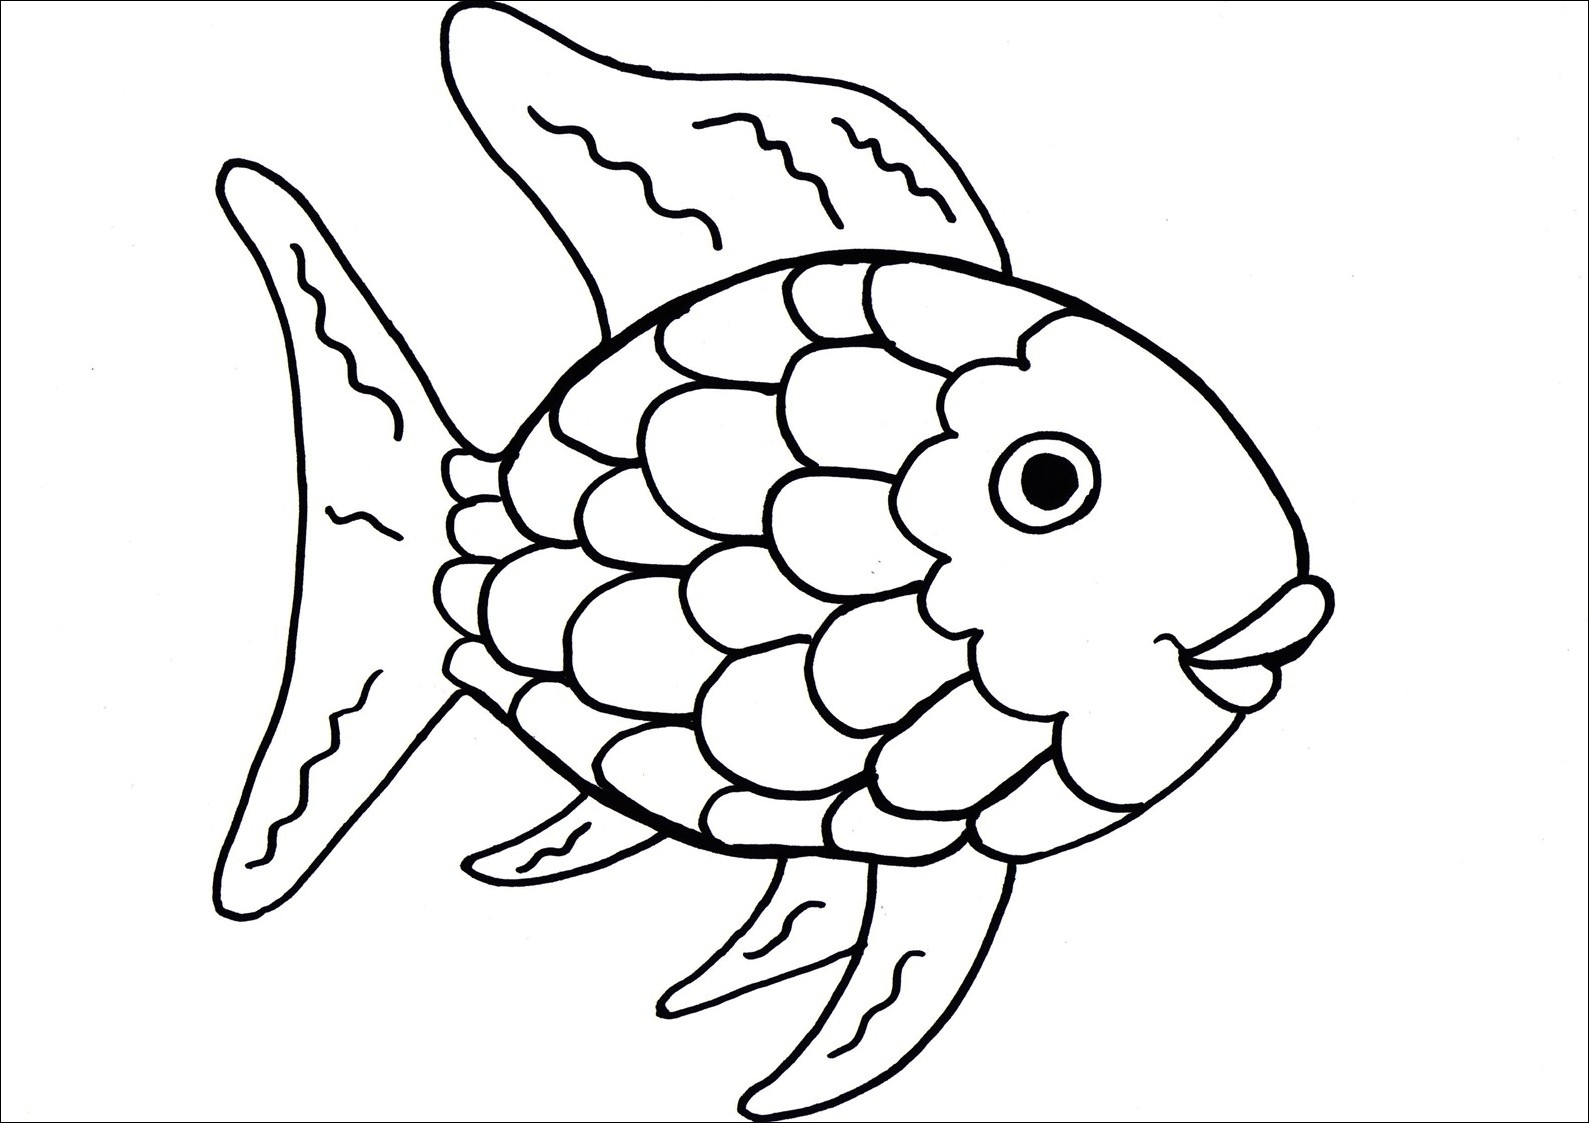 1589x1123 Fresh Rainbow Trout Coloring Pages Free Coloring Pages Download